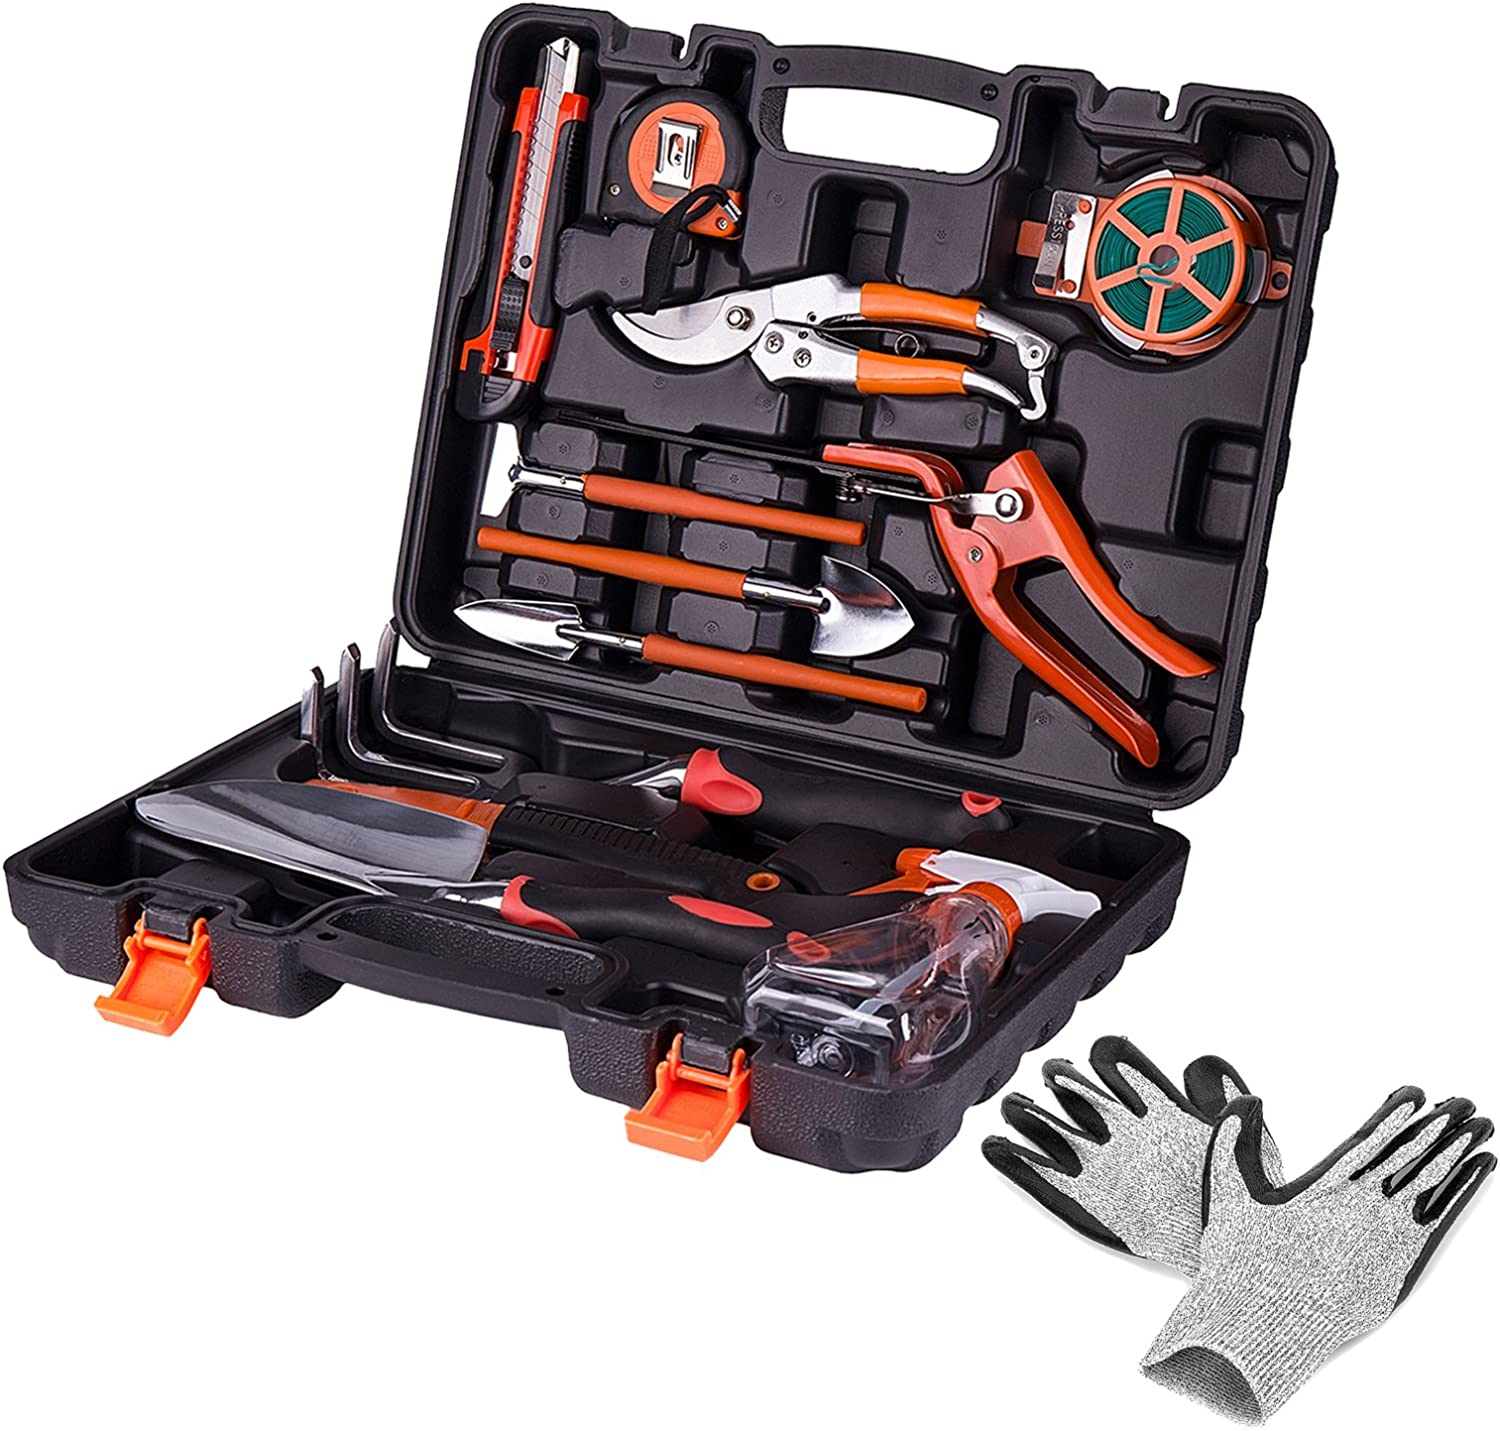 KORAM 13-Piece Garden Tools Kit Plant Care Tool Home Improvement Tool Sets with Carrying Case Include Secateurs, Trowel Pruners, Pruning Saw, Rakes – Garden Gifts for Men Women